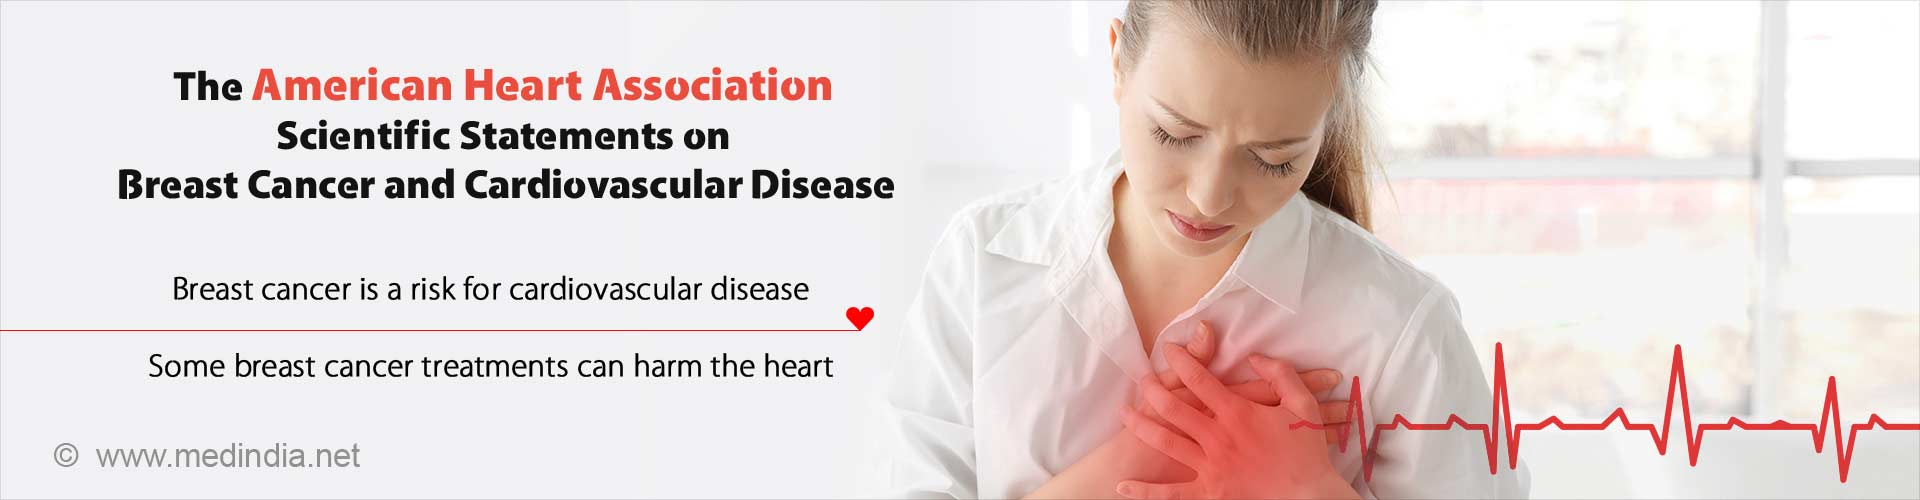 The American Heart Association Scientific Statements on Breast Cancer and Cardiovascular Disease